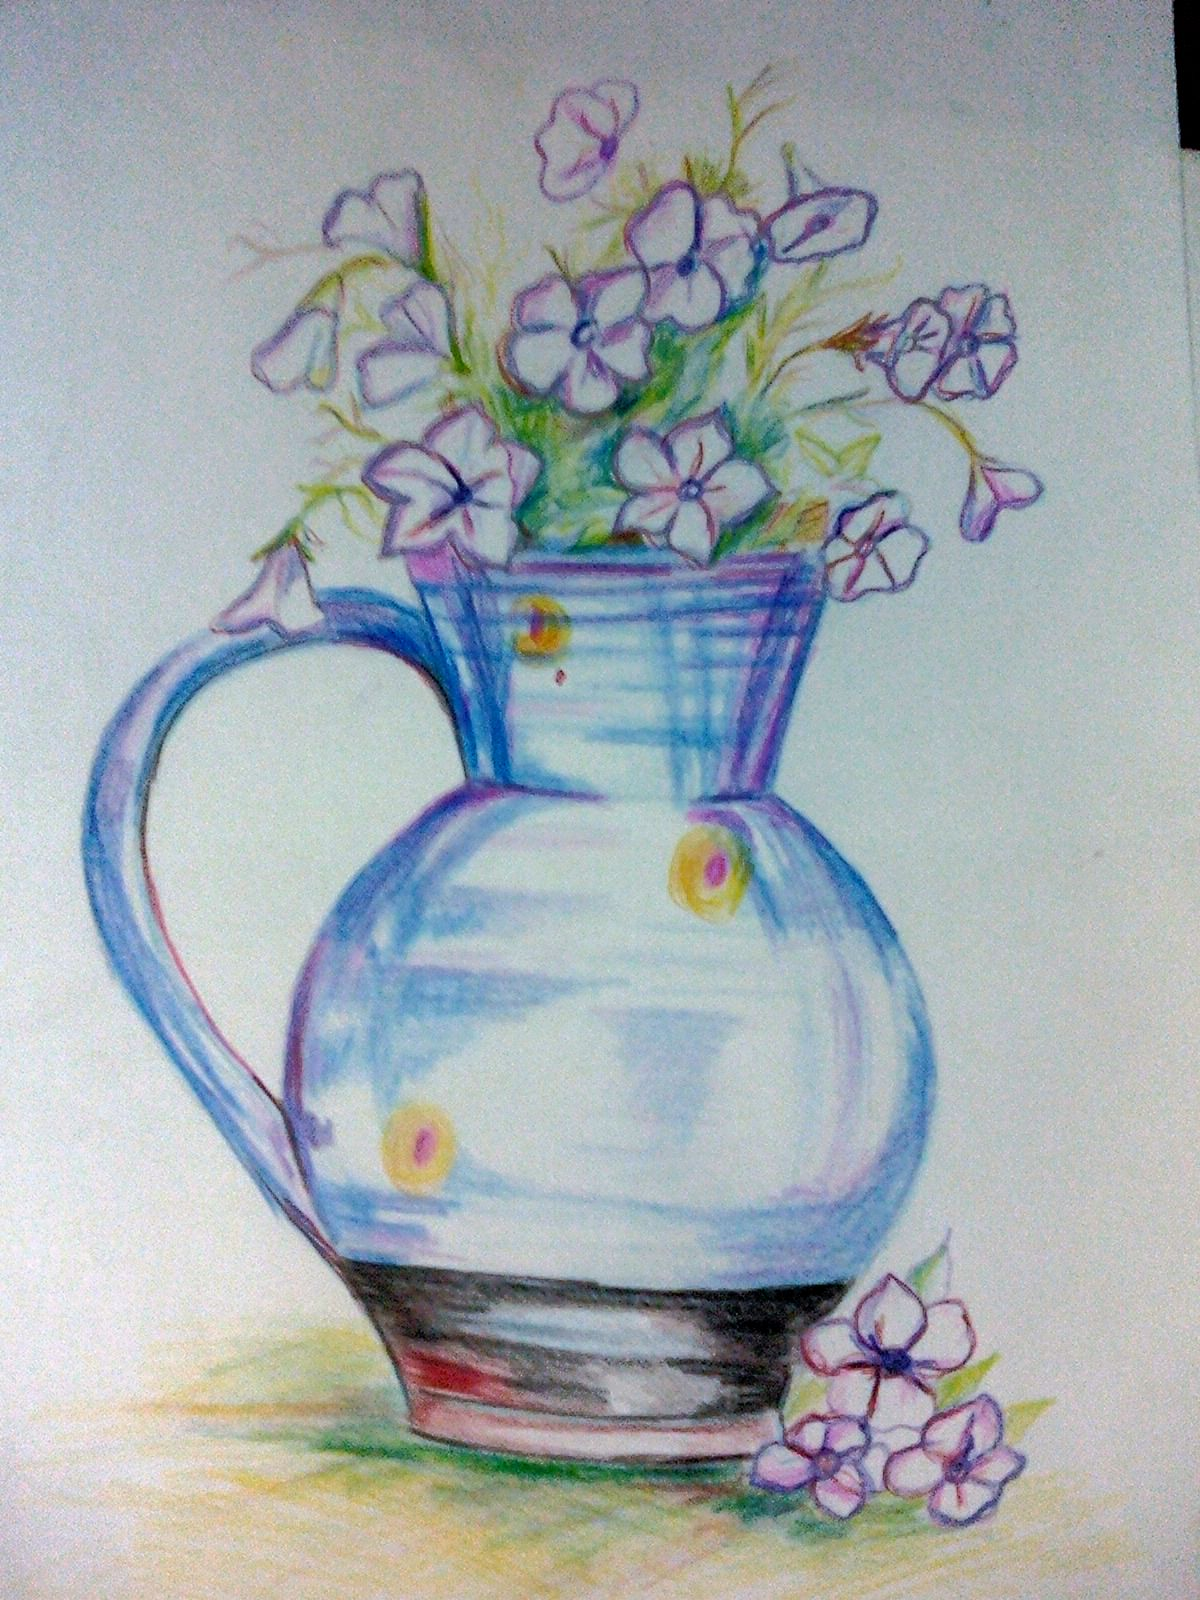 You Can Draw And Paint A Flower Pot